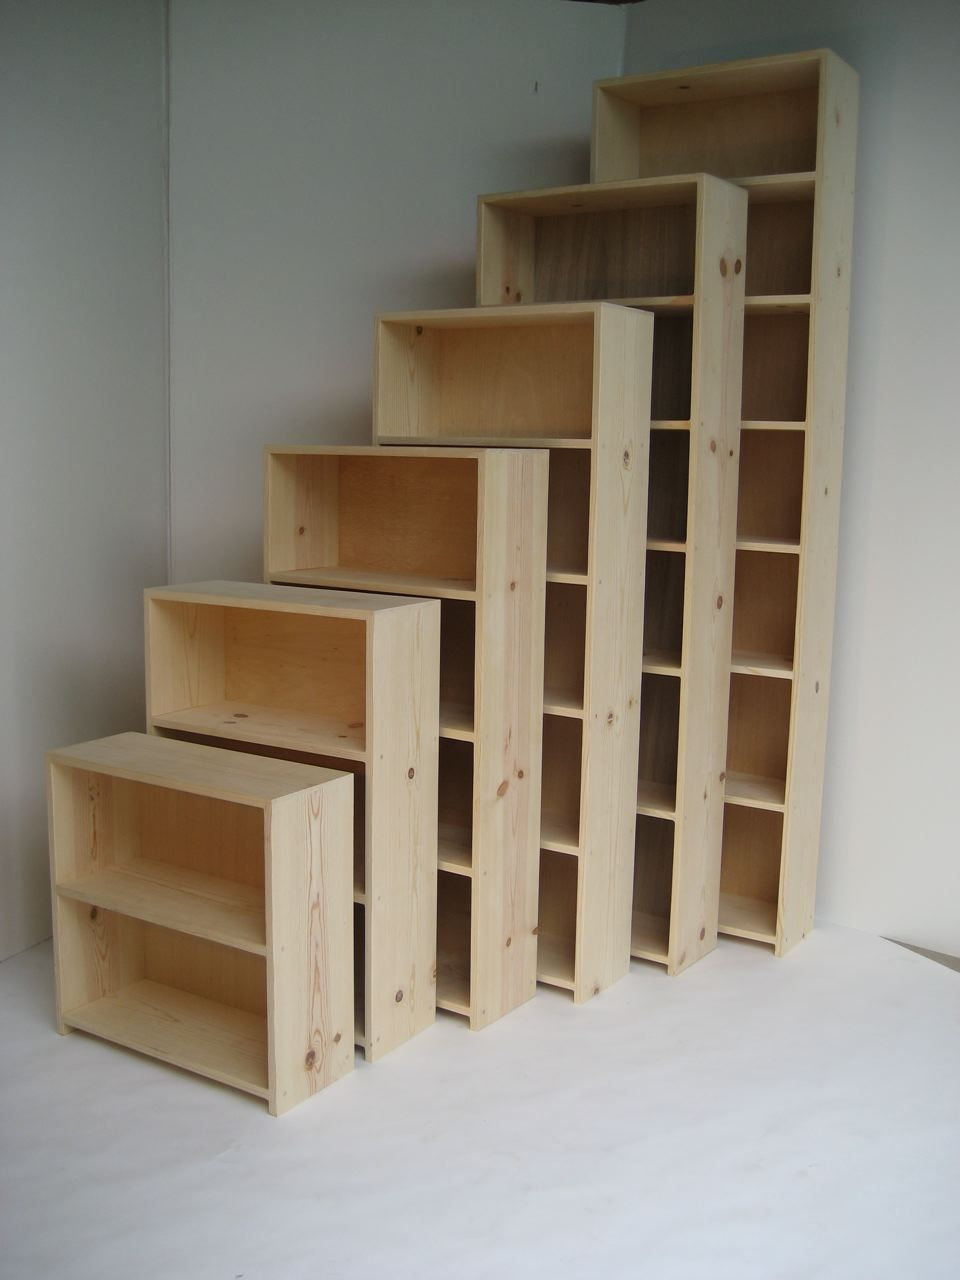 8 Inch Deep Bookcase Best Way To Paint Wood Furniture Check More At Http Fiveinchfloppy Com 8 Inch Deep Bookcase Bookcase Shelves Bookcase Shelves